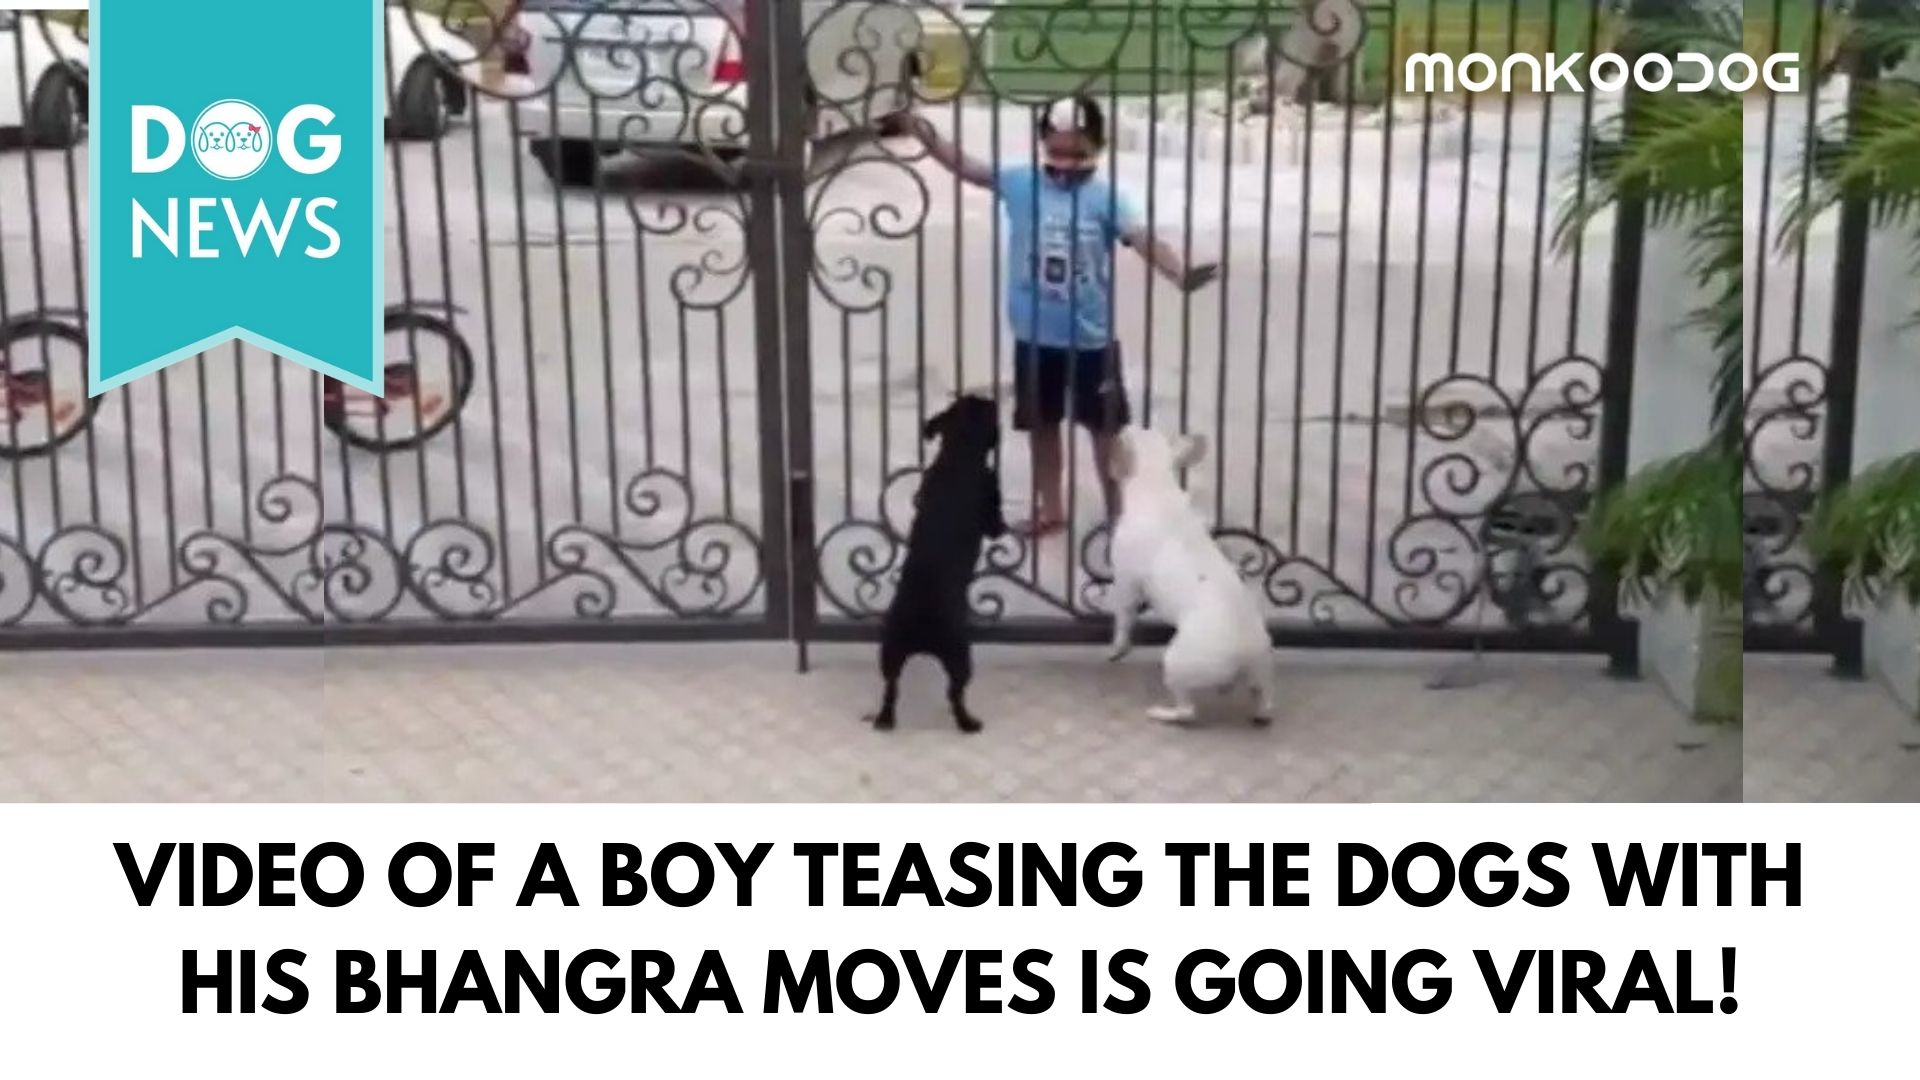 Dog's reaction made the video viral when a Sikh boy teases the dogs with his Bhangra moves